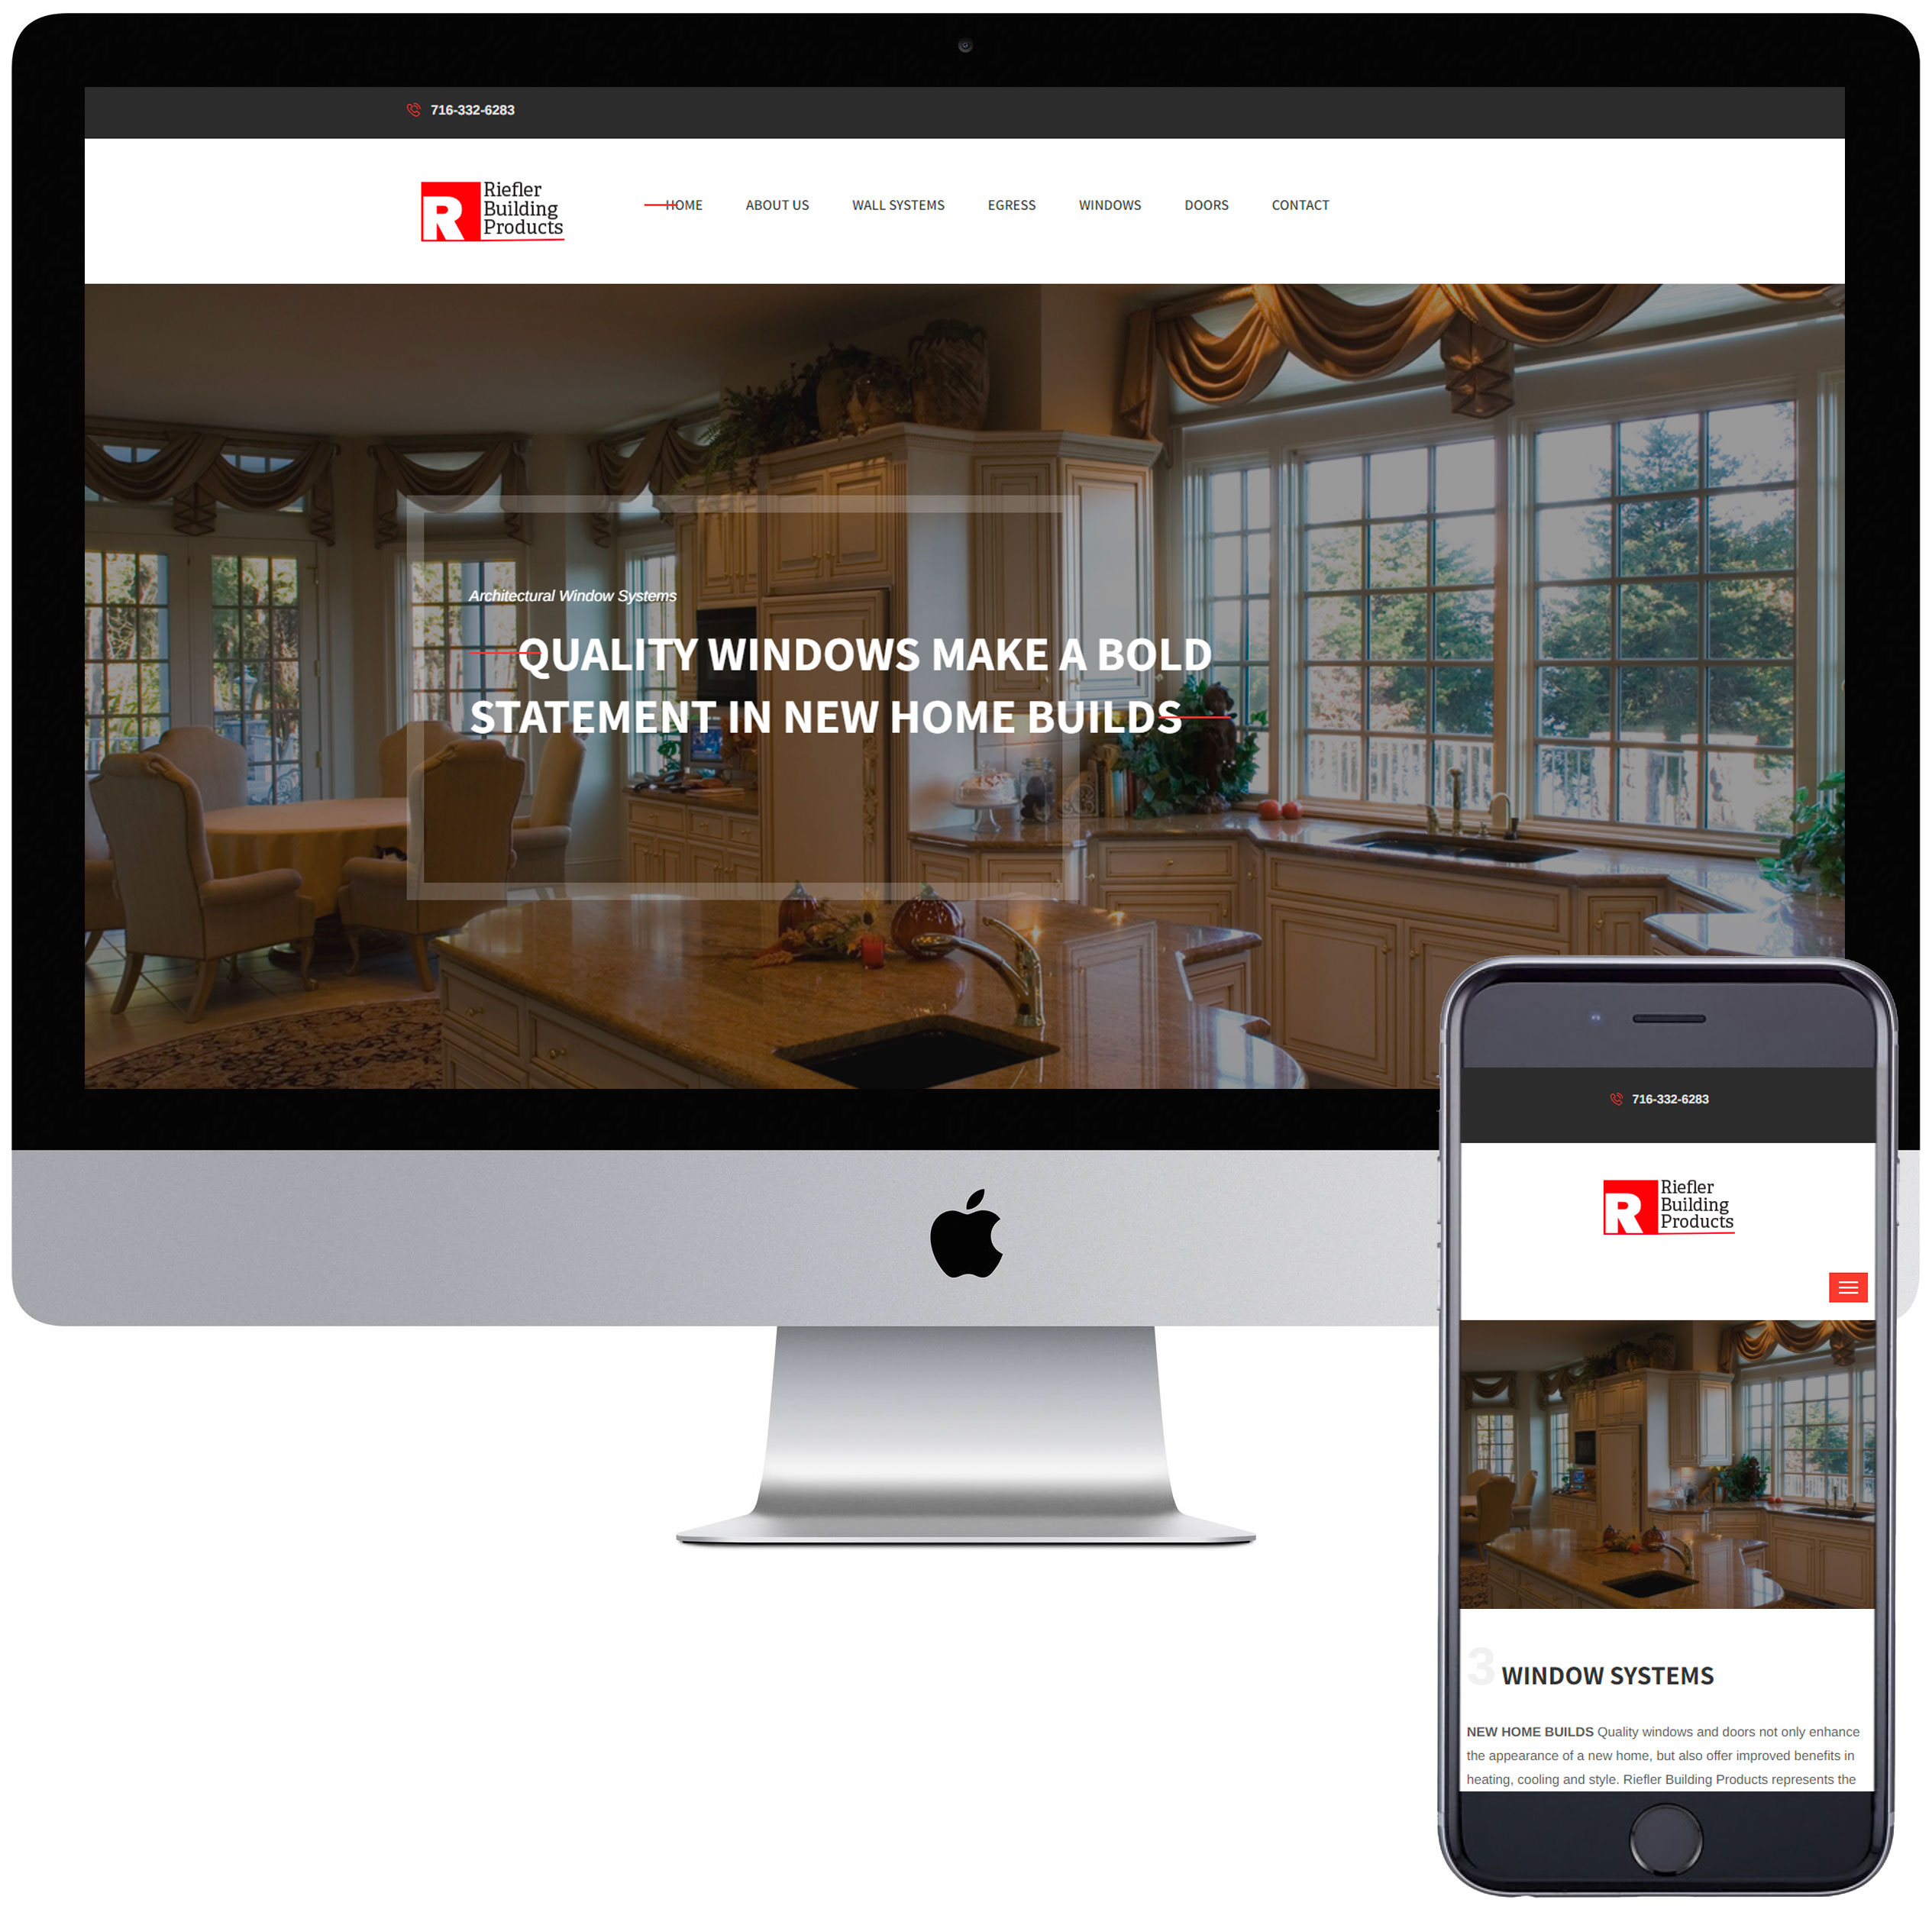 Riefler Building Products website.